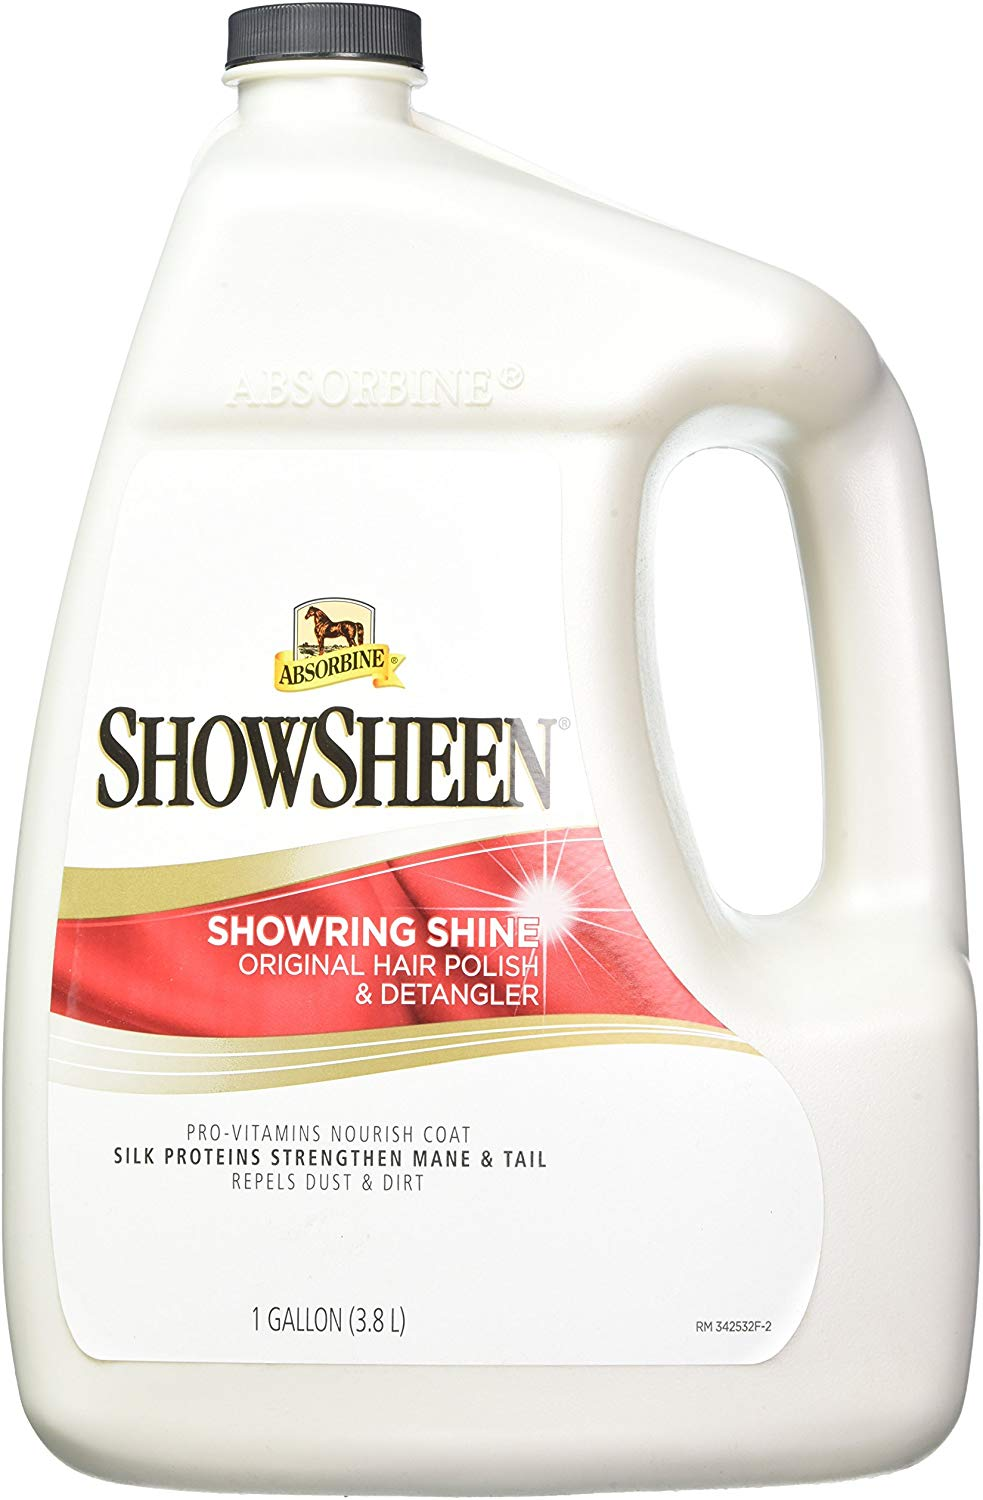 Absorbine ShowSheen ShowRing Shine Horse Polish & Detangler, 1-gallon